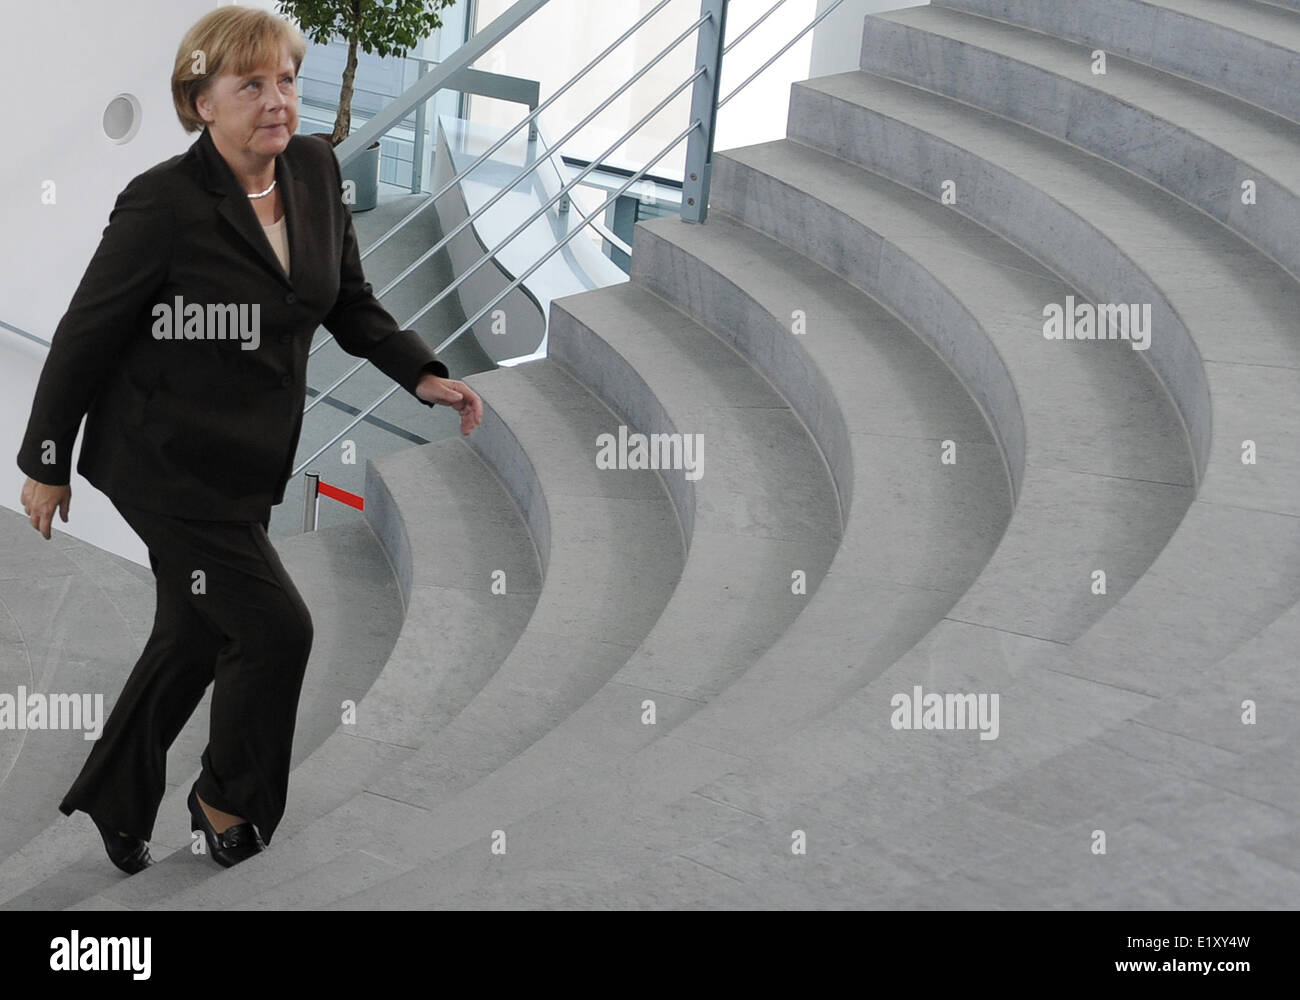 After a meeting with potential sponsors for the Winter Olympics 2018, Angela Merkel walks through the Federal Chancellor's - Stock Image